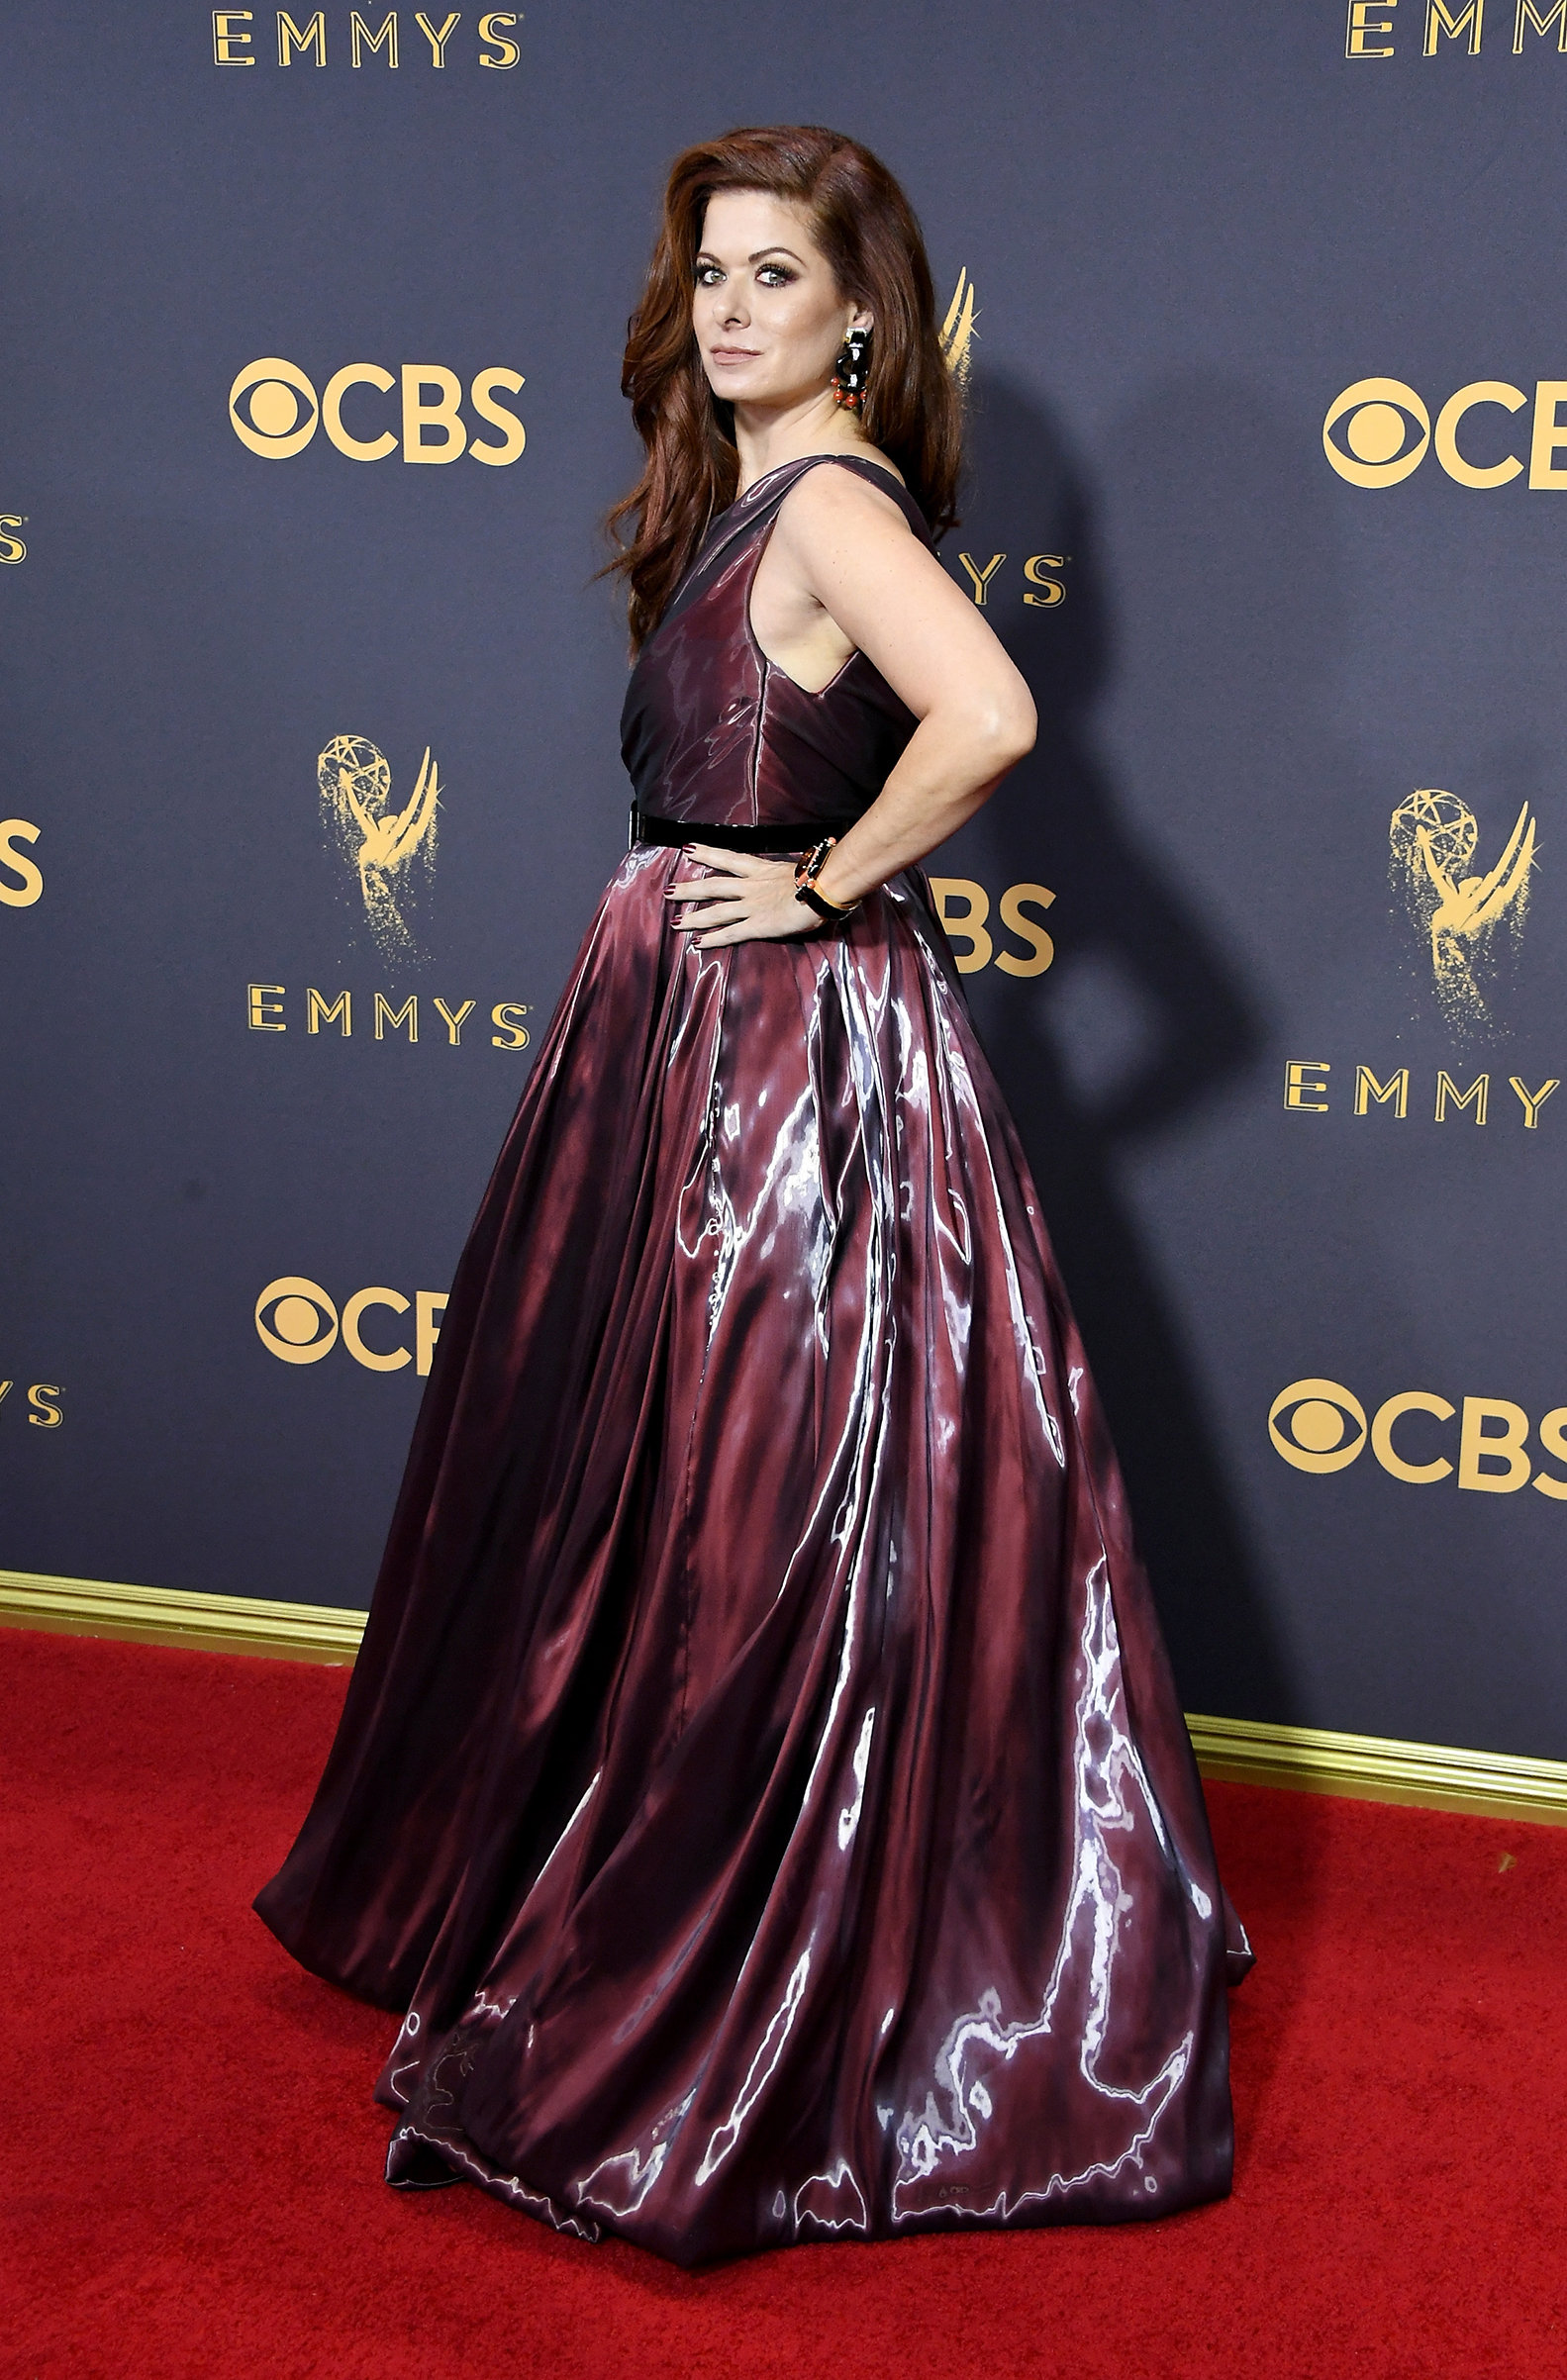 Actor Debra Messing attends the 69th Annual Primetime Emmy Awards at Microsoft Theater on September 17, 2017 in Los Angeles, California.